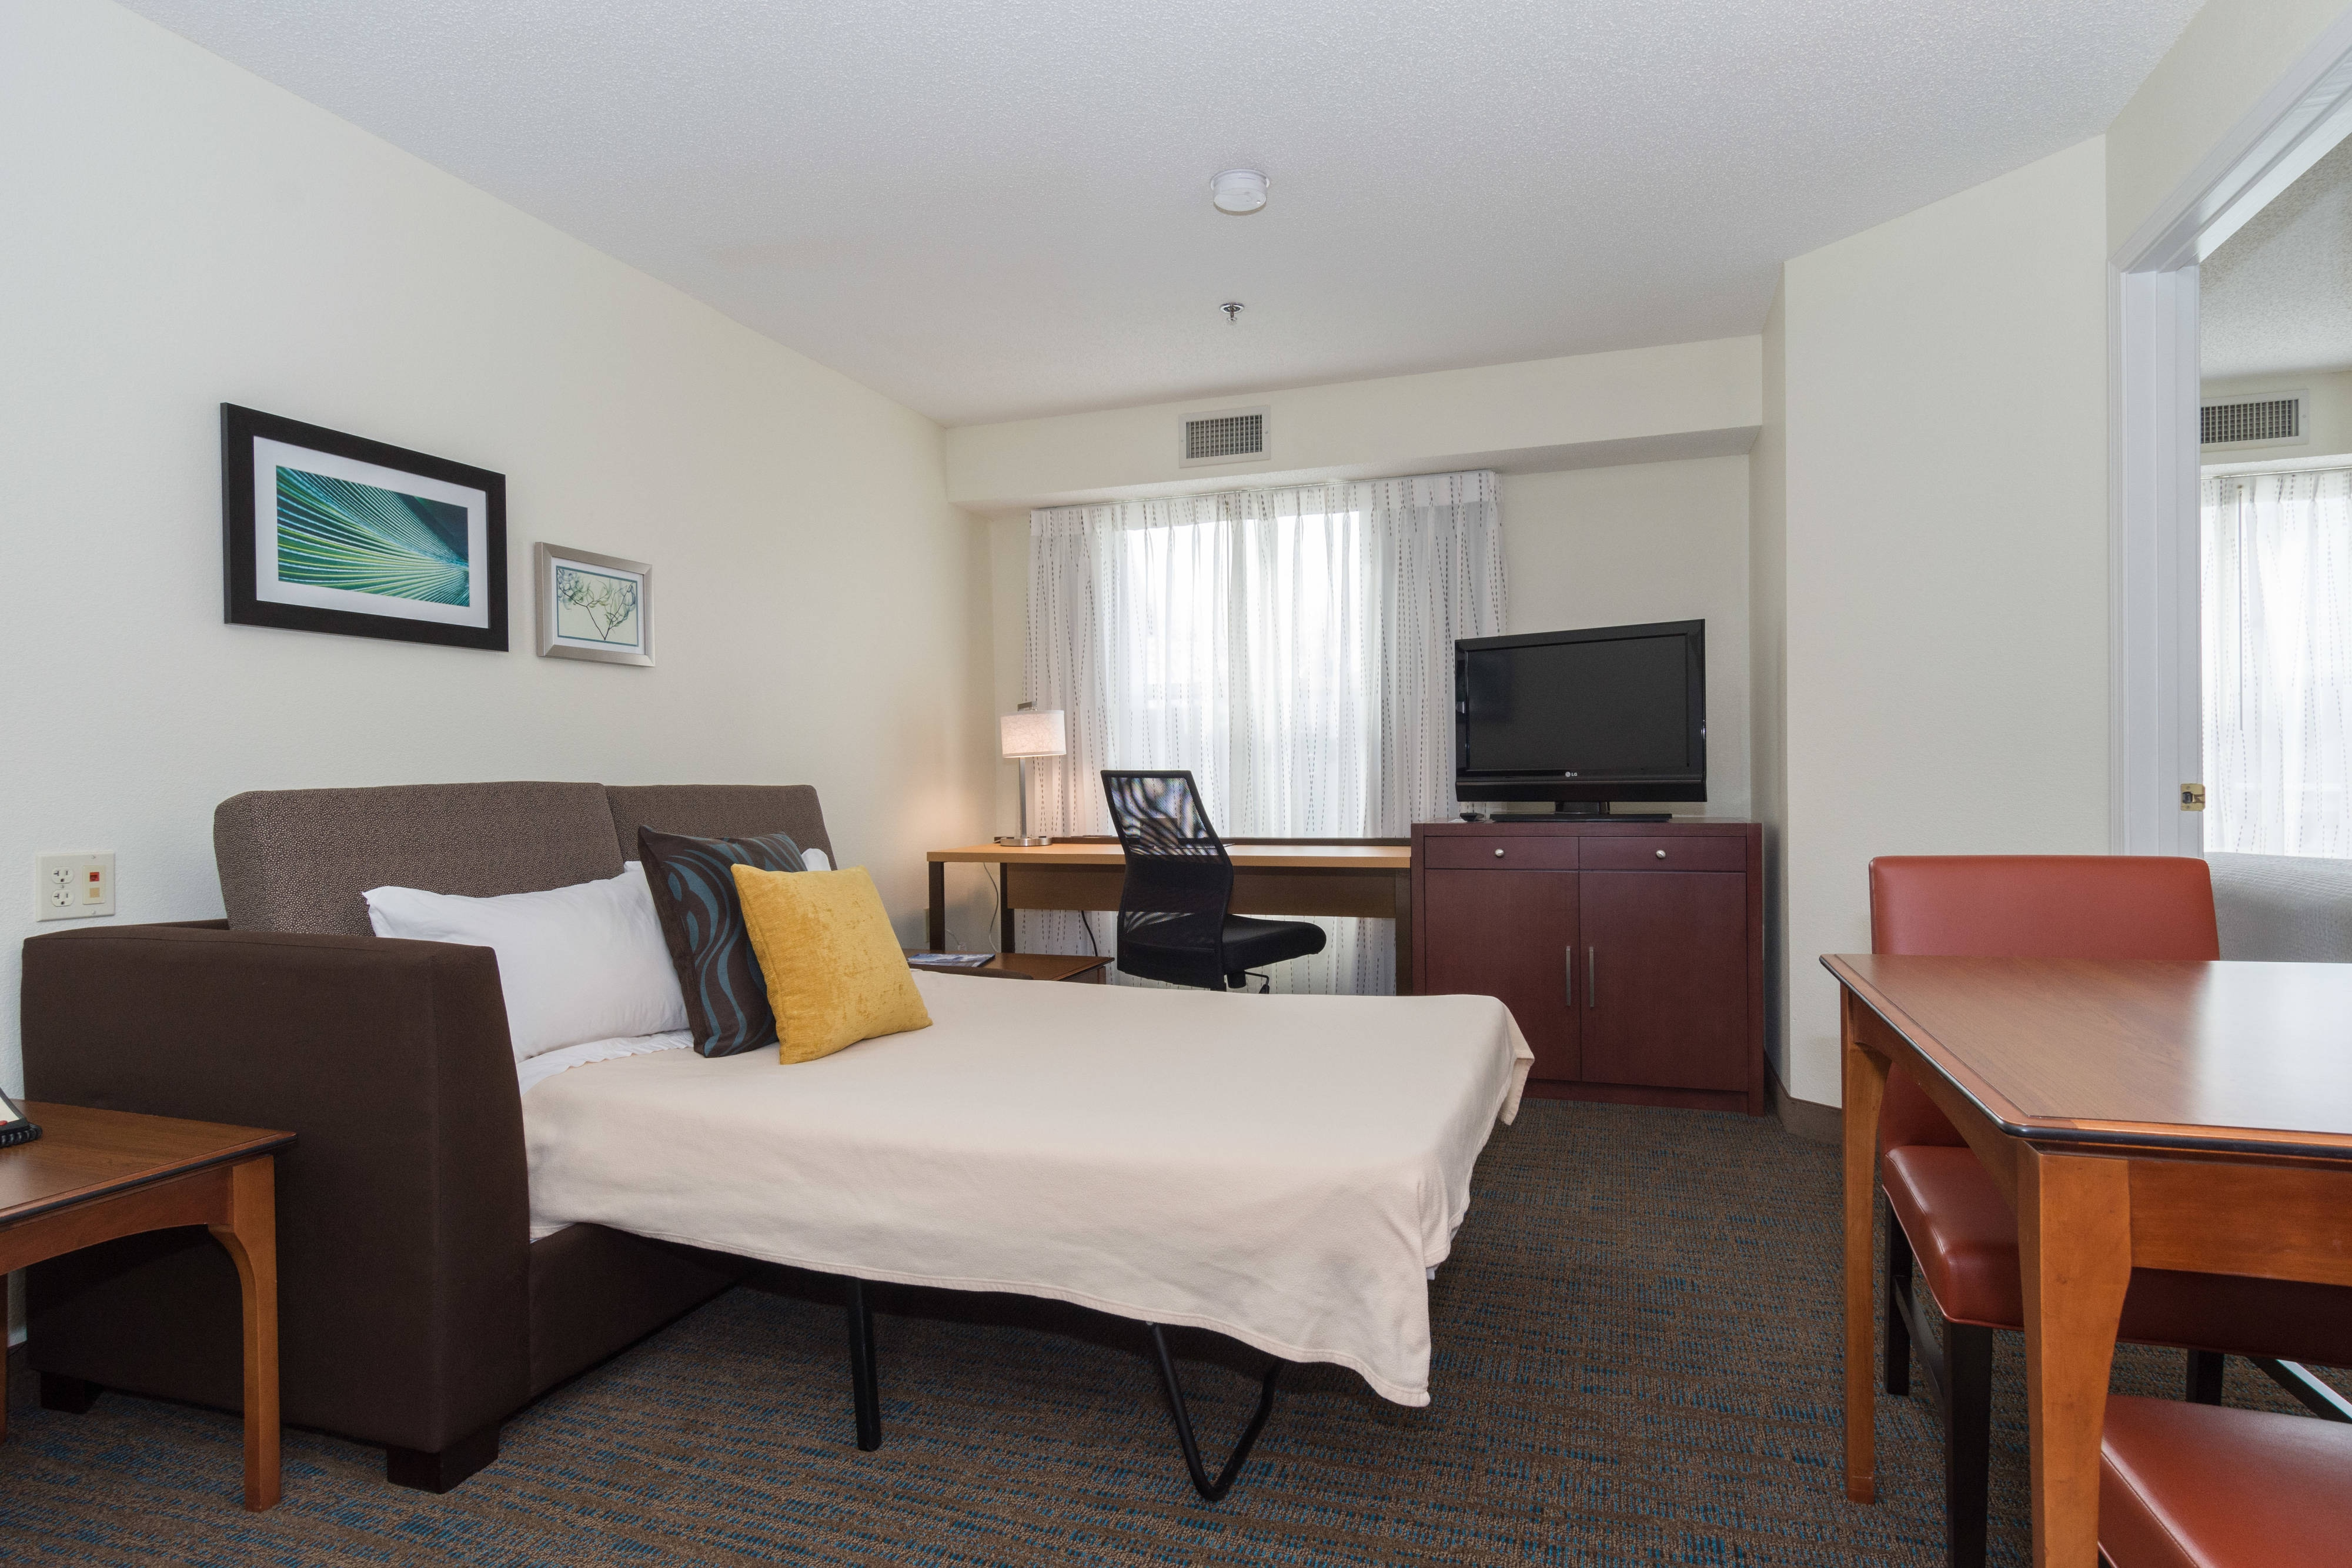 Extended Stay Hotel Lodging In Huntersville Nc Queen Studio Suite